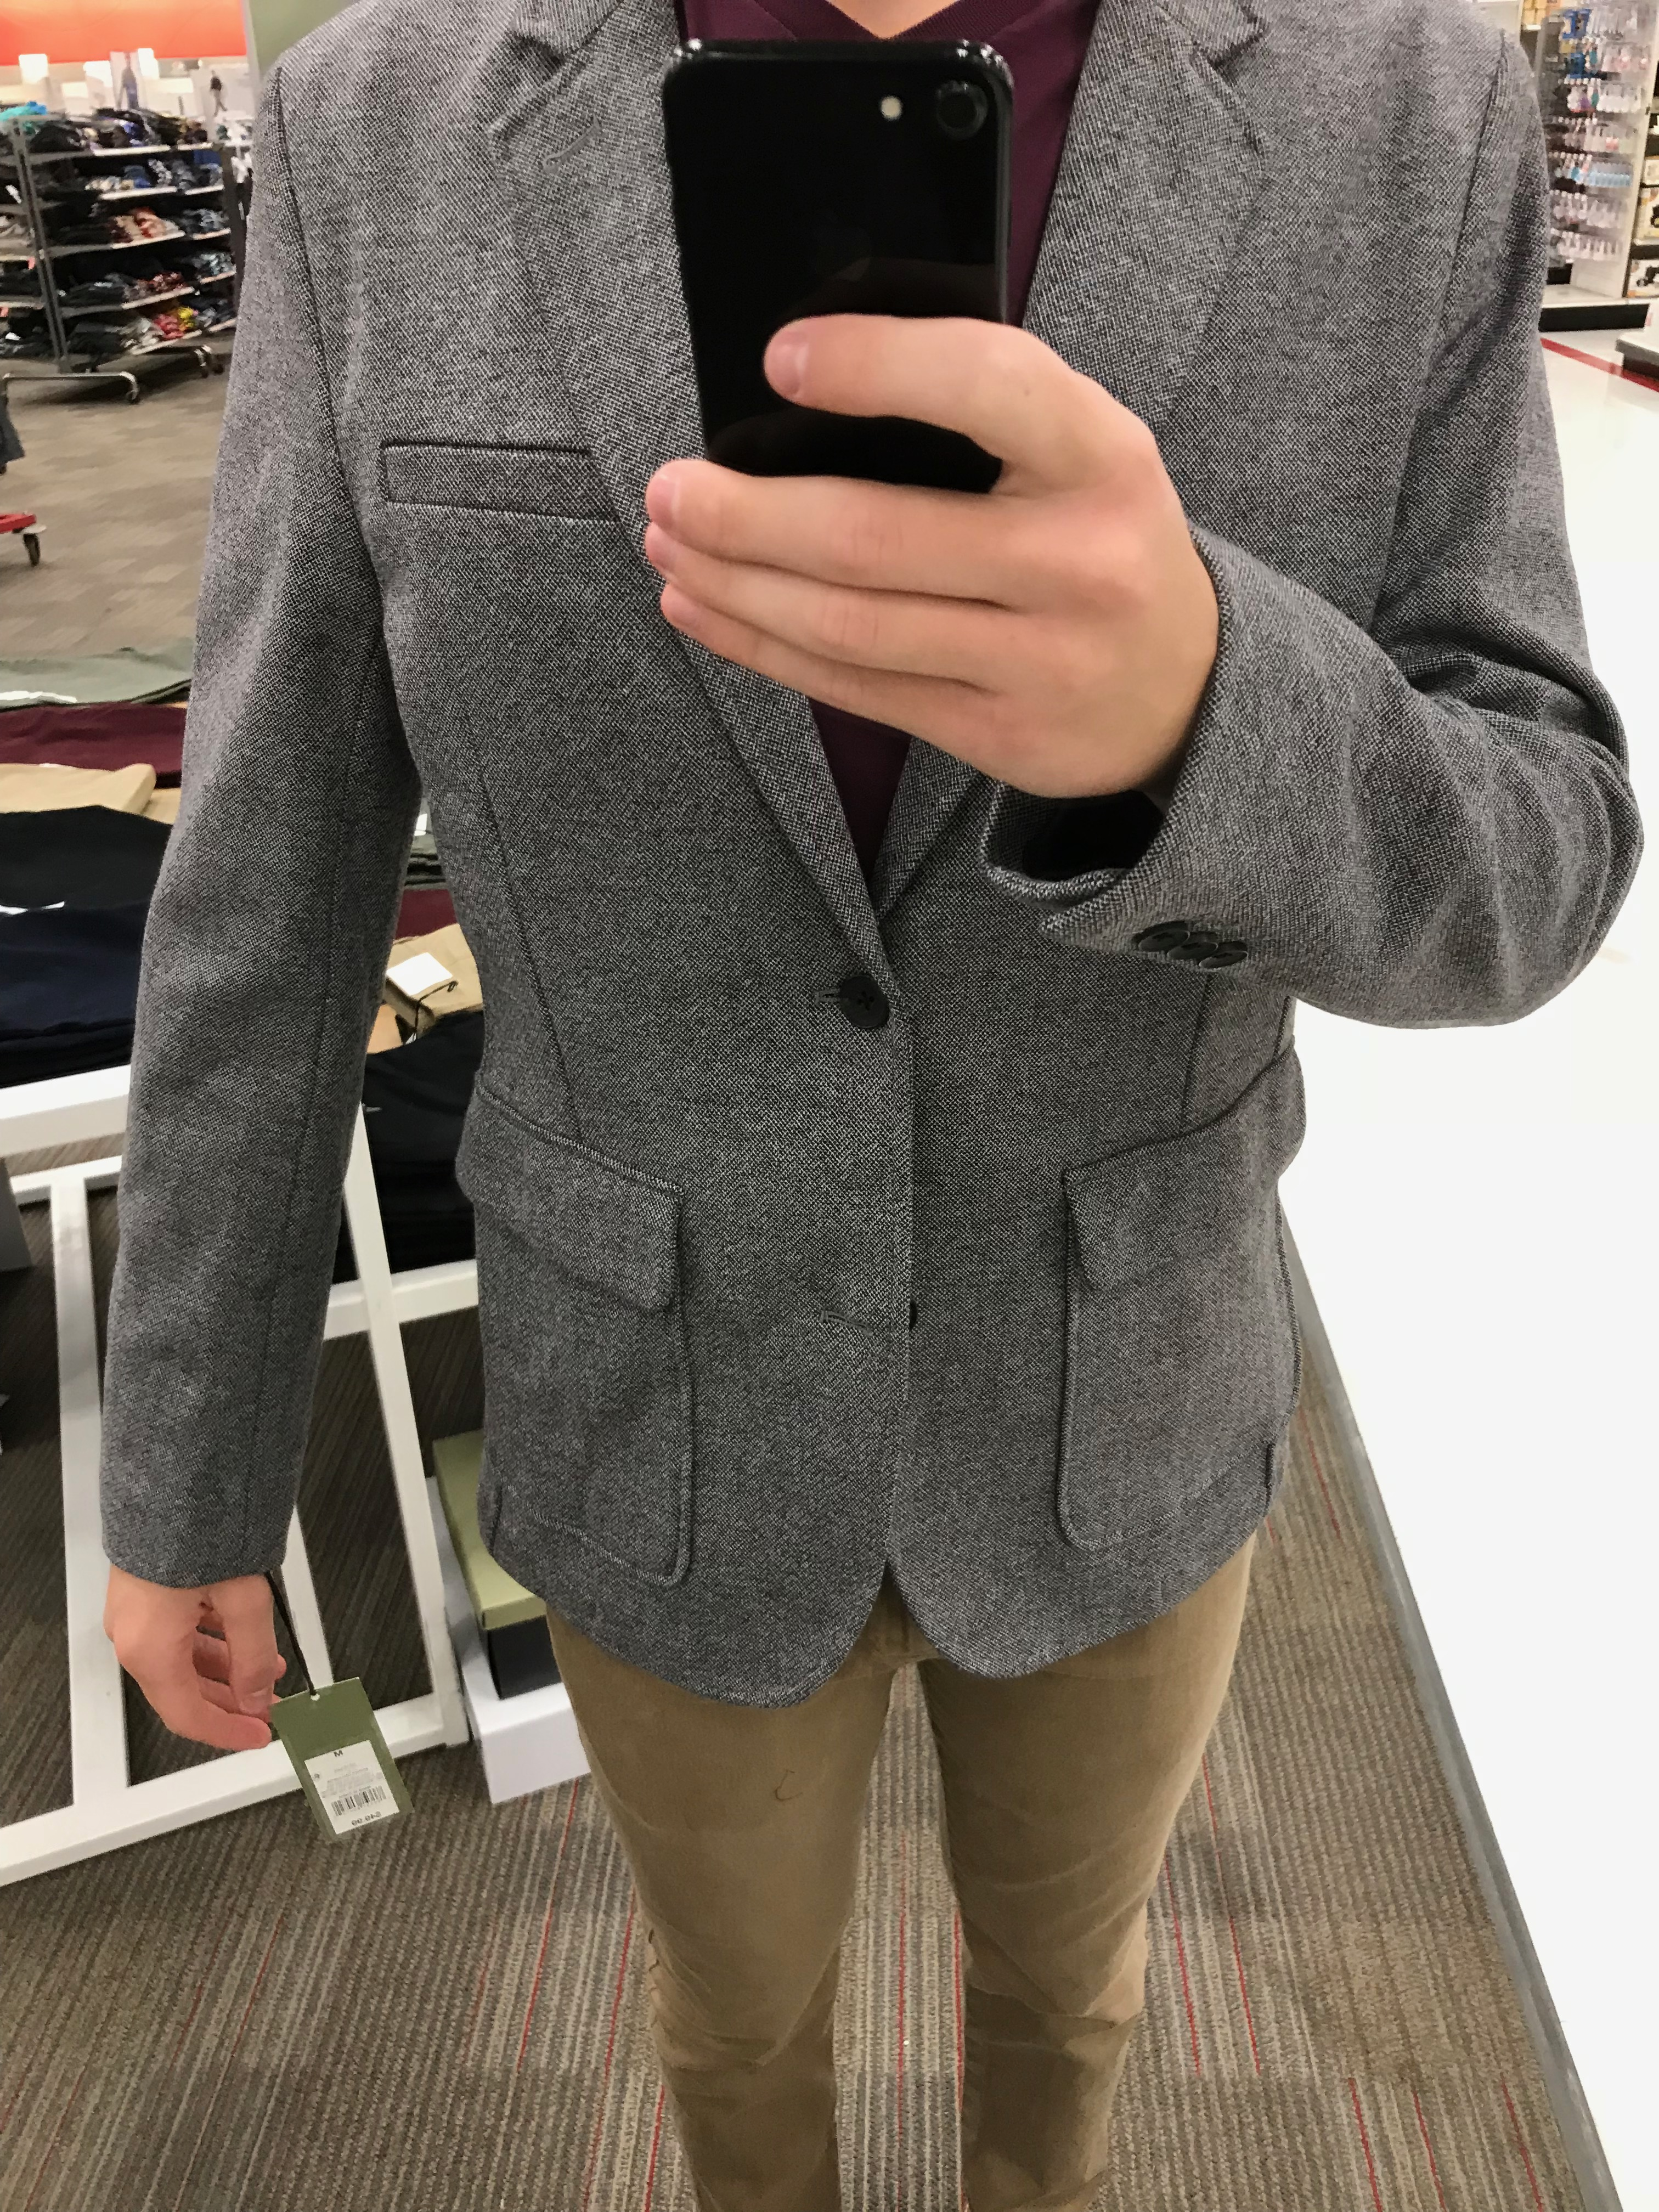 606f125c04d6 A Comprehensive Review of Target s New Affordable Menswear Line ...